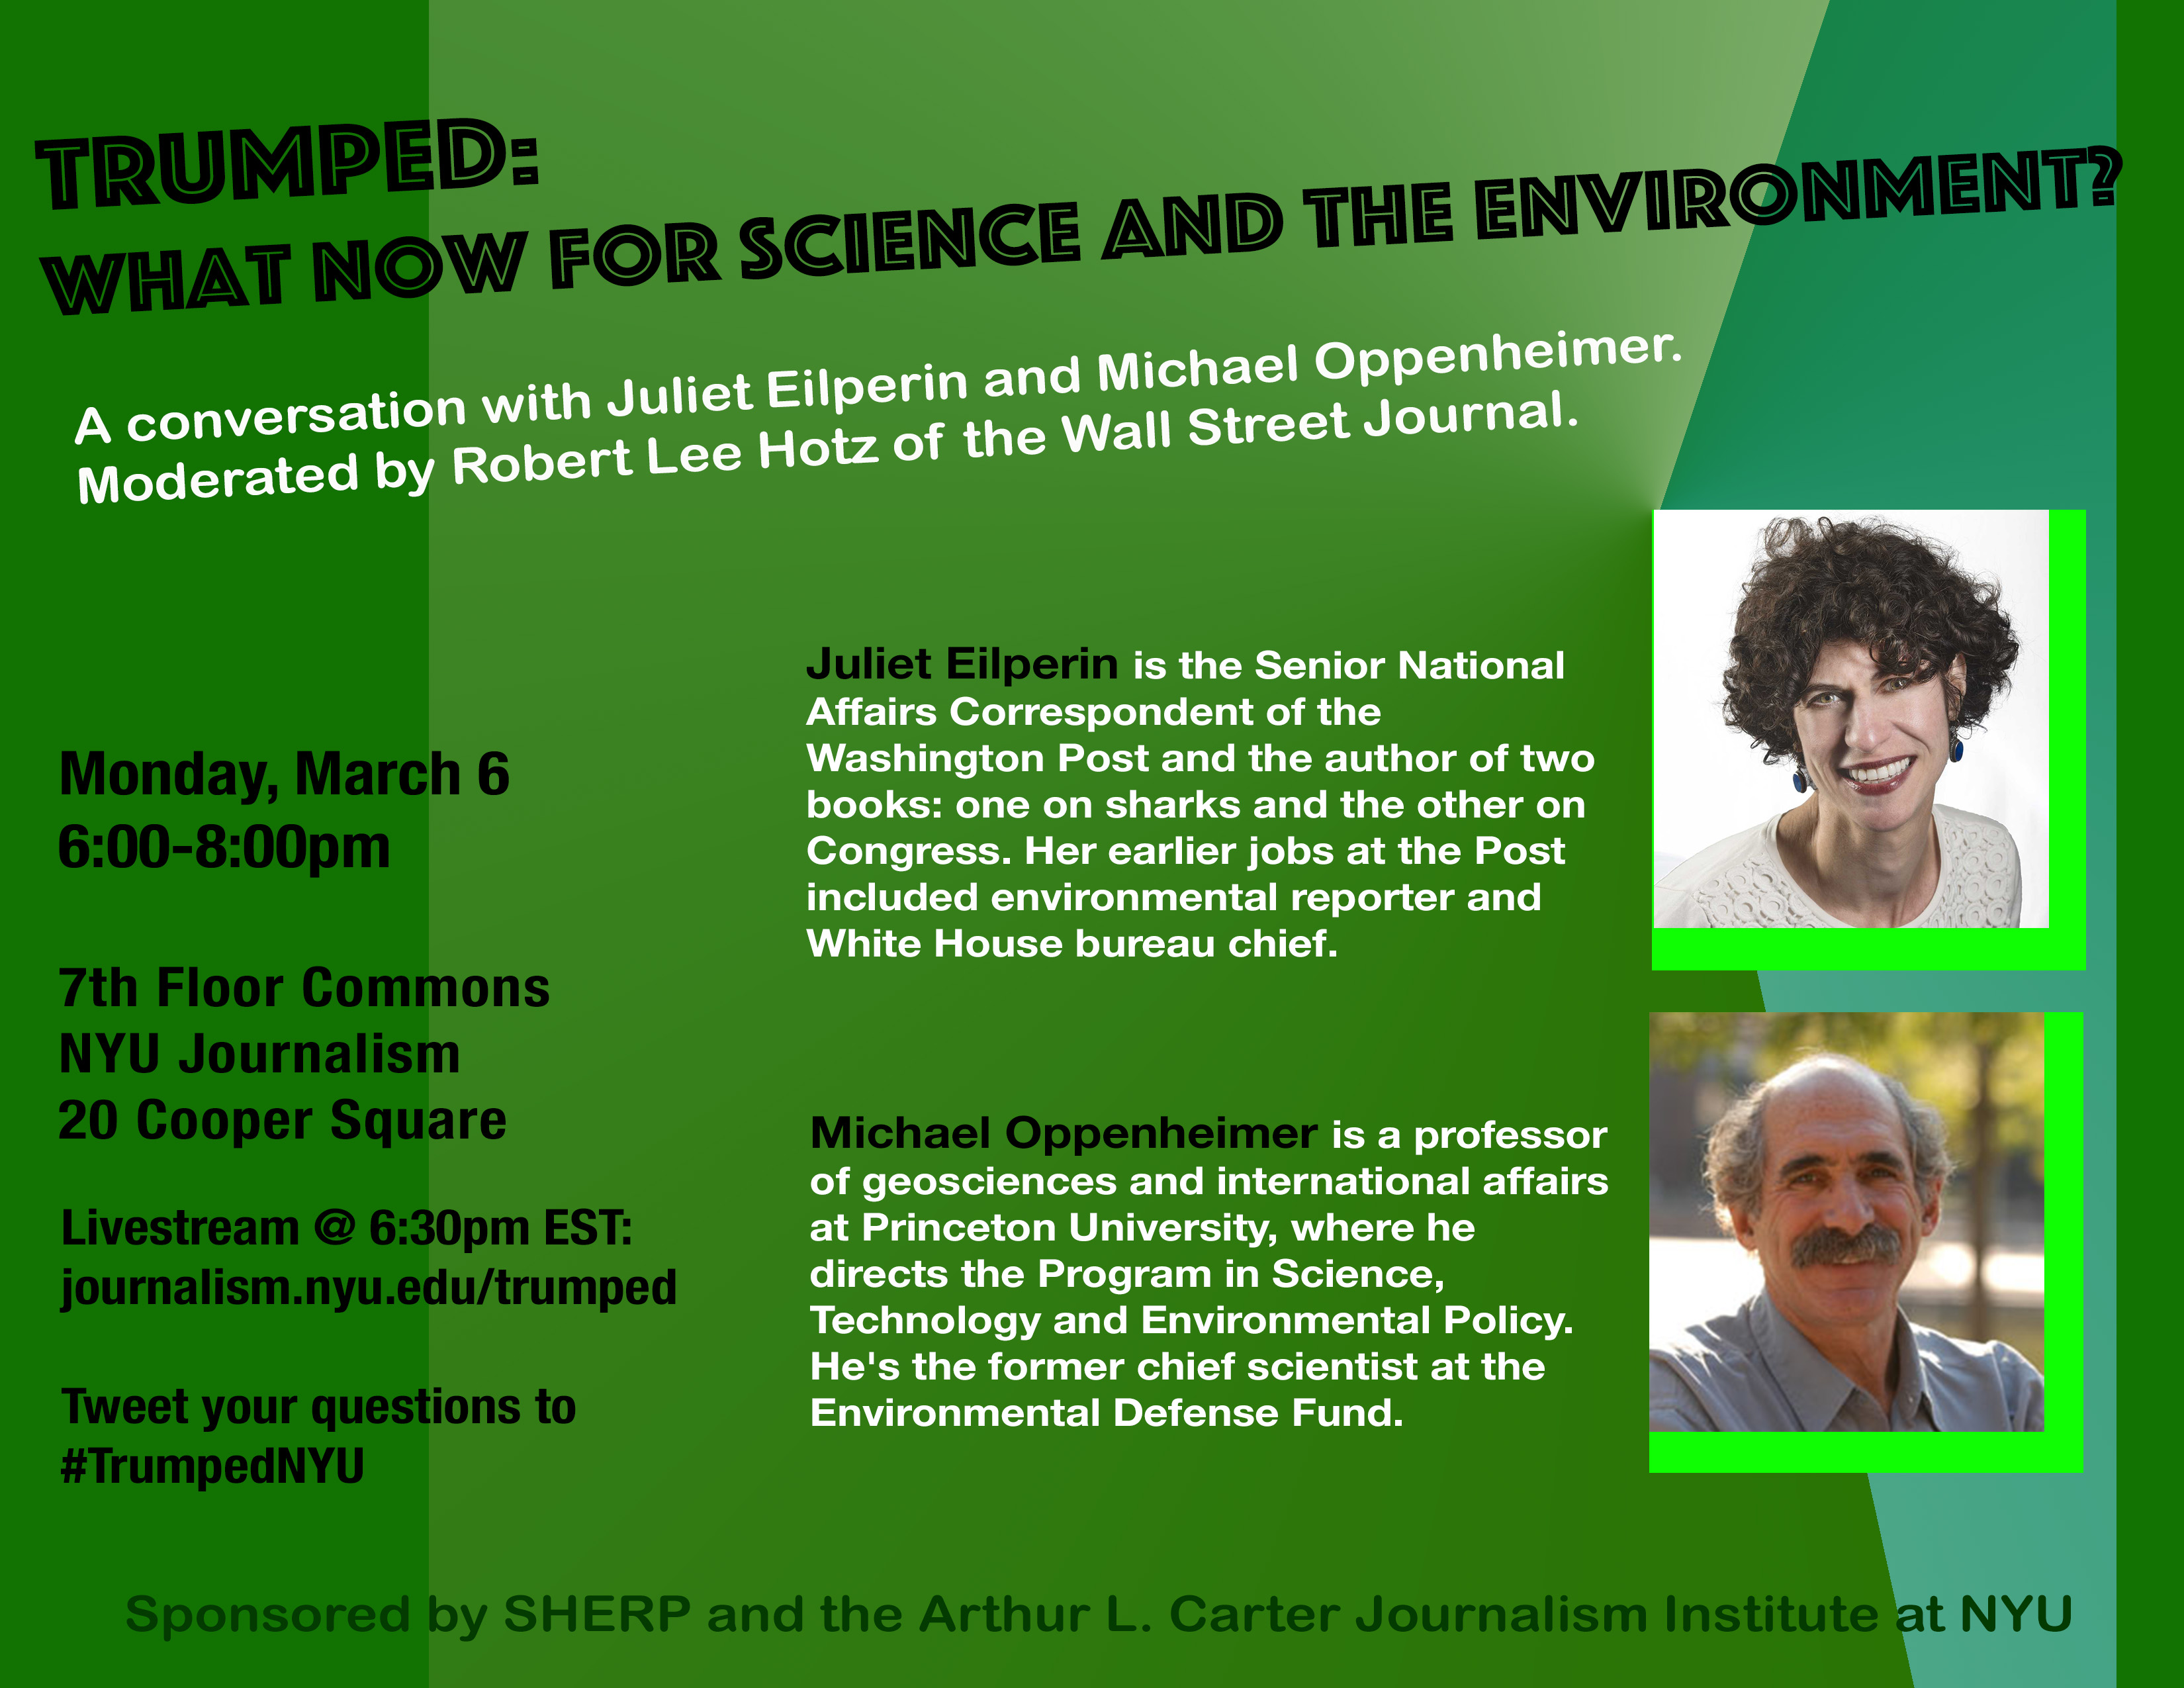 Trumped: What Now for Science and the Environment? - Event Poster 6 Mar 2017